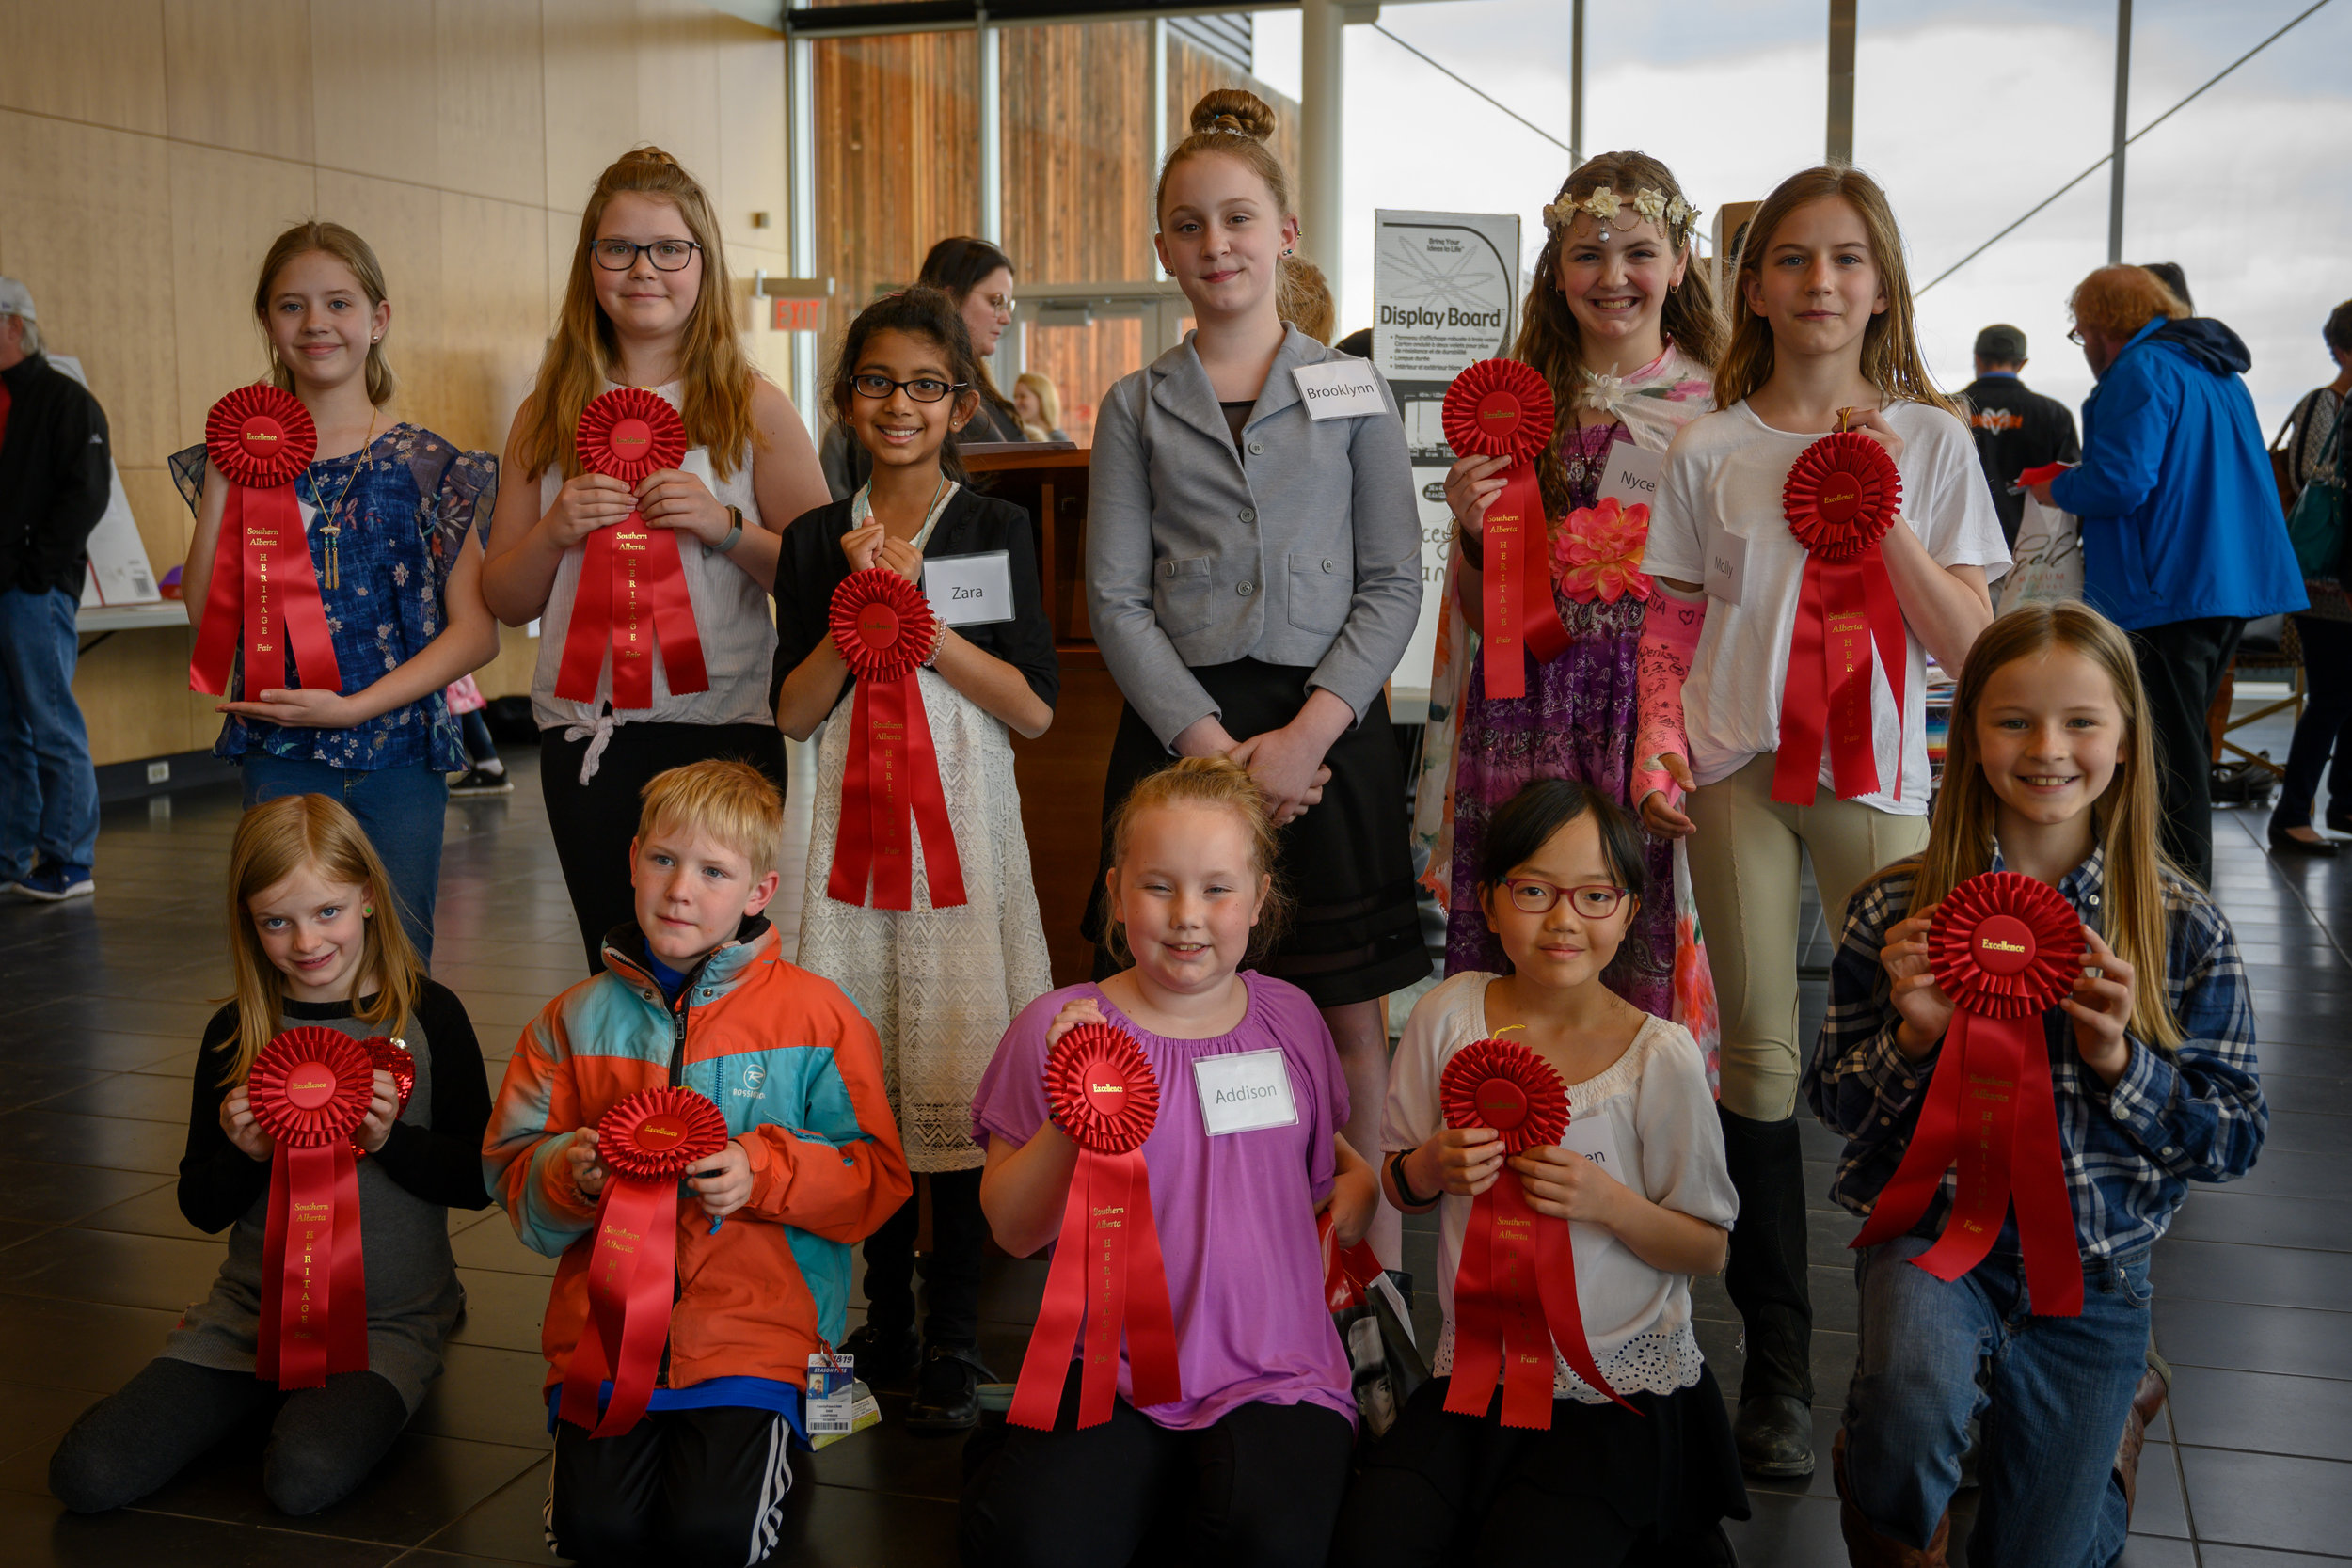 A photo featuring many of the students who won awards of excellence in history for their Heritage Fair projects  Standing:  Courtenay Shampaign  and  Preslee Losey  — Great Canadian Women: Inspiring Today's Girls,  Zara Enayetullah  — Craig Kielburger,  Brooklynn Allen  — the Great Depression,  Nycea Hazelwood  — Truth & Reconciliation,  Molly Buteau  and  Hanna Friesen  (kneeling) — Horses in the Day.  Kneeling:  Aislin Falkenberg  — the High Level Bridge,  Samuel Campmans  — Post WWII Dutch Immigration,  Addison Carey  — Head‑Smashed-In Buffalo Jump,  Kathleen Wu  — Chinese Immigrants to Canada.